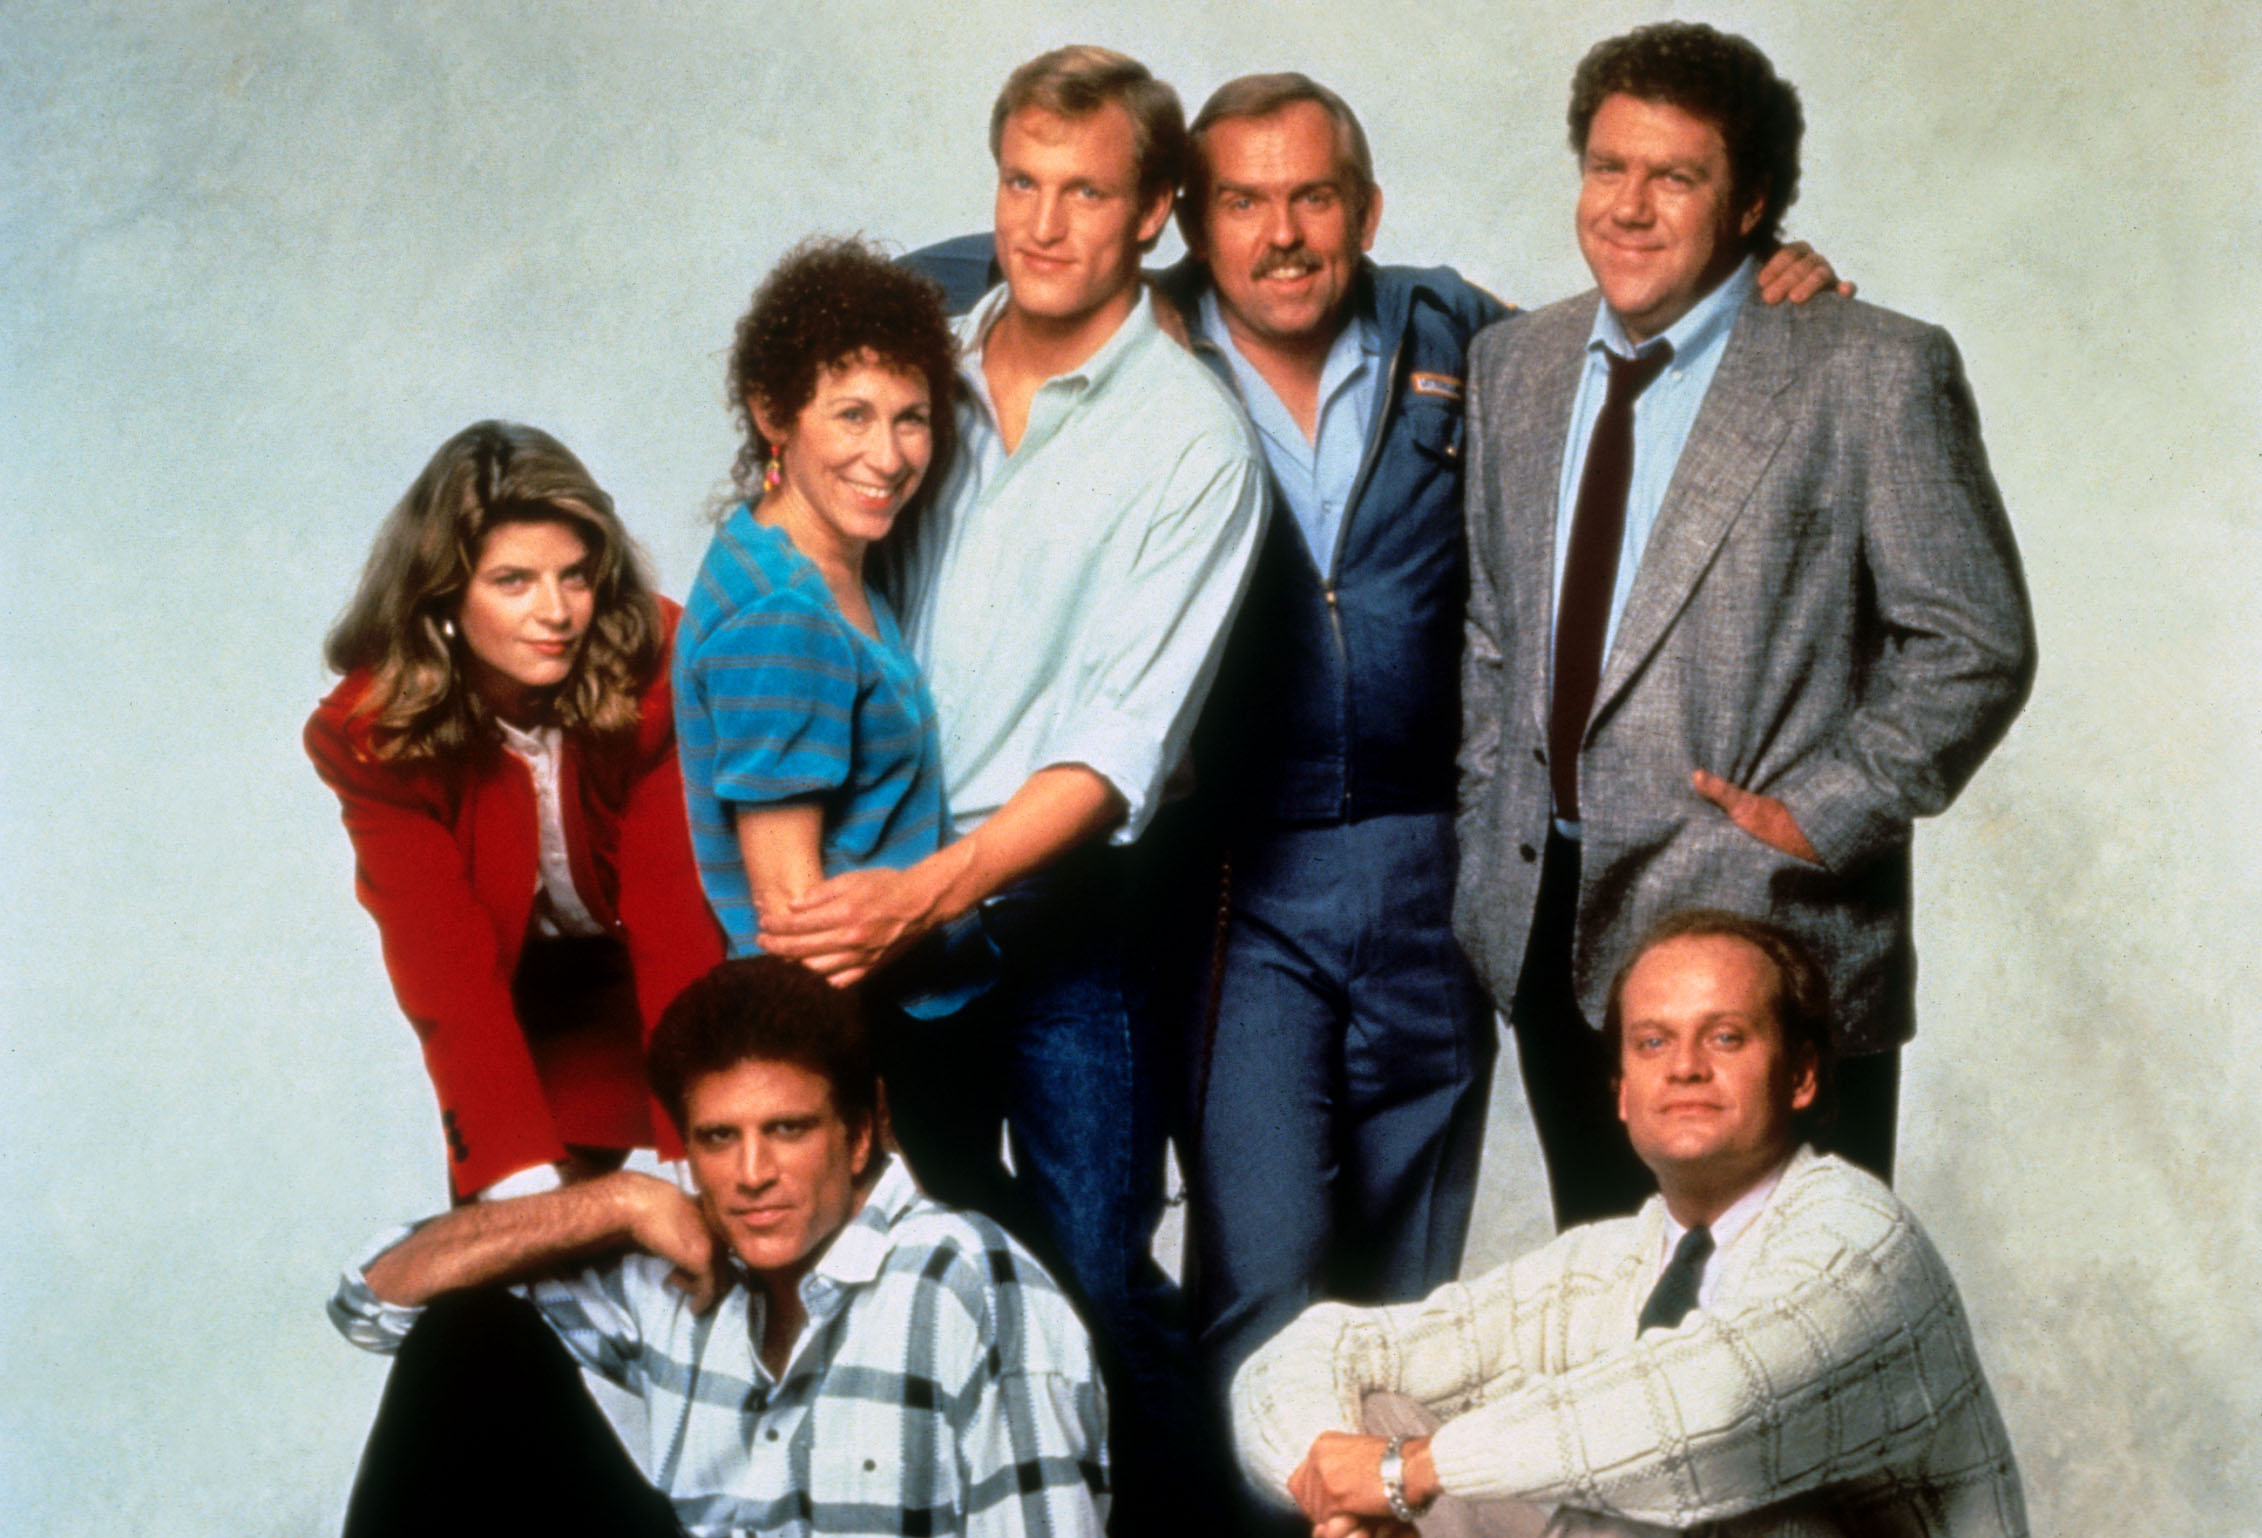 CHEERS [US TV 1982 -1993]  [Back row L-R] KIRSTIE ALLEY as Rebecca Howe, RHEA PERLMAN as Carla Tortelli, WOODY HARRELSON as W